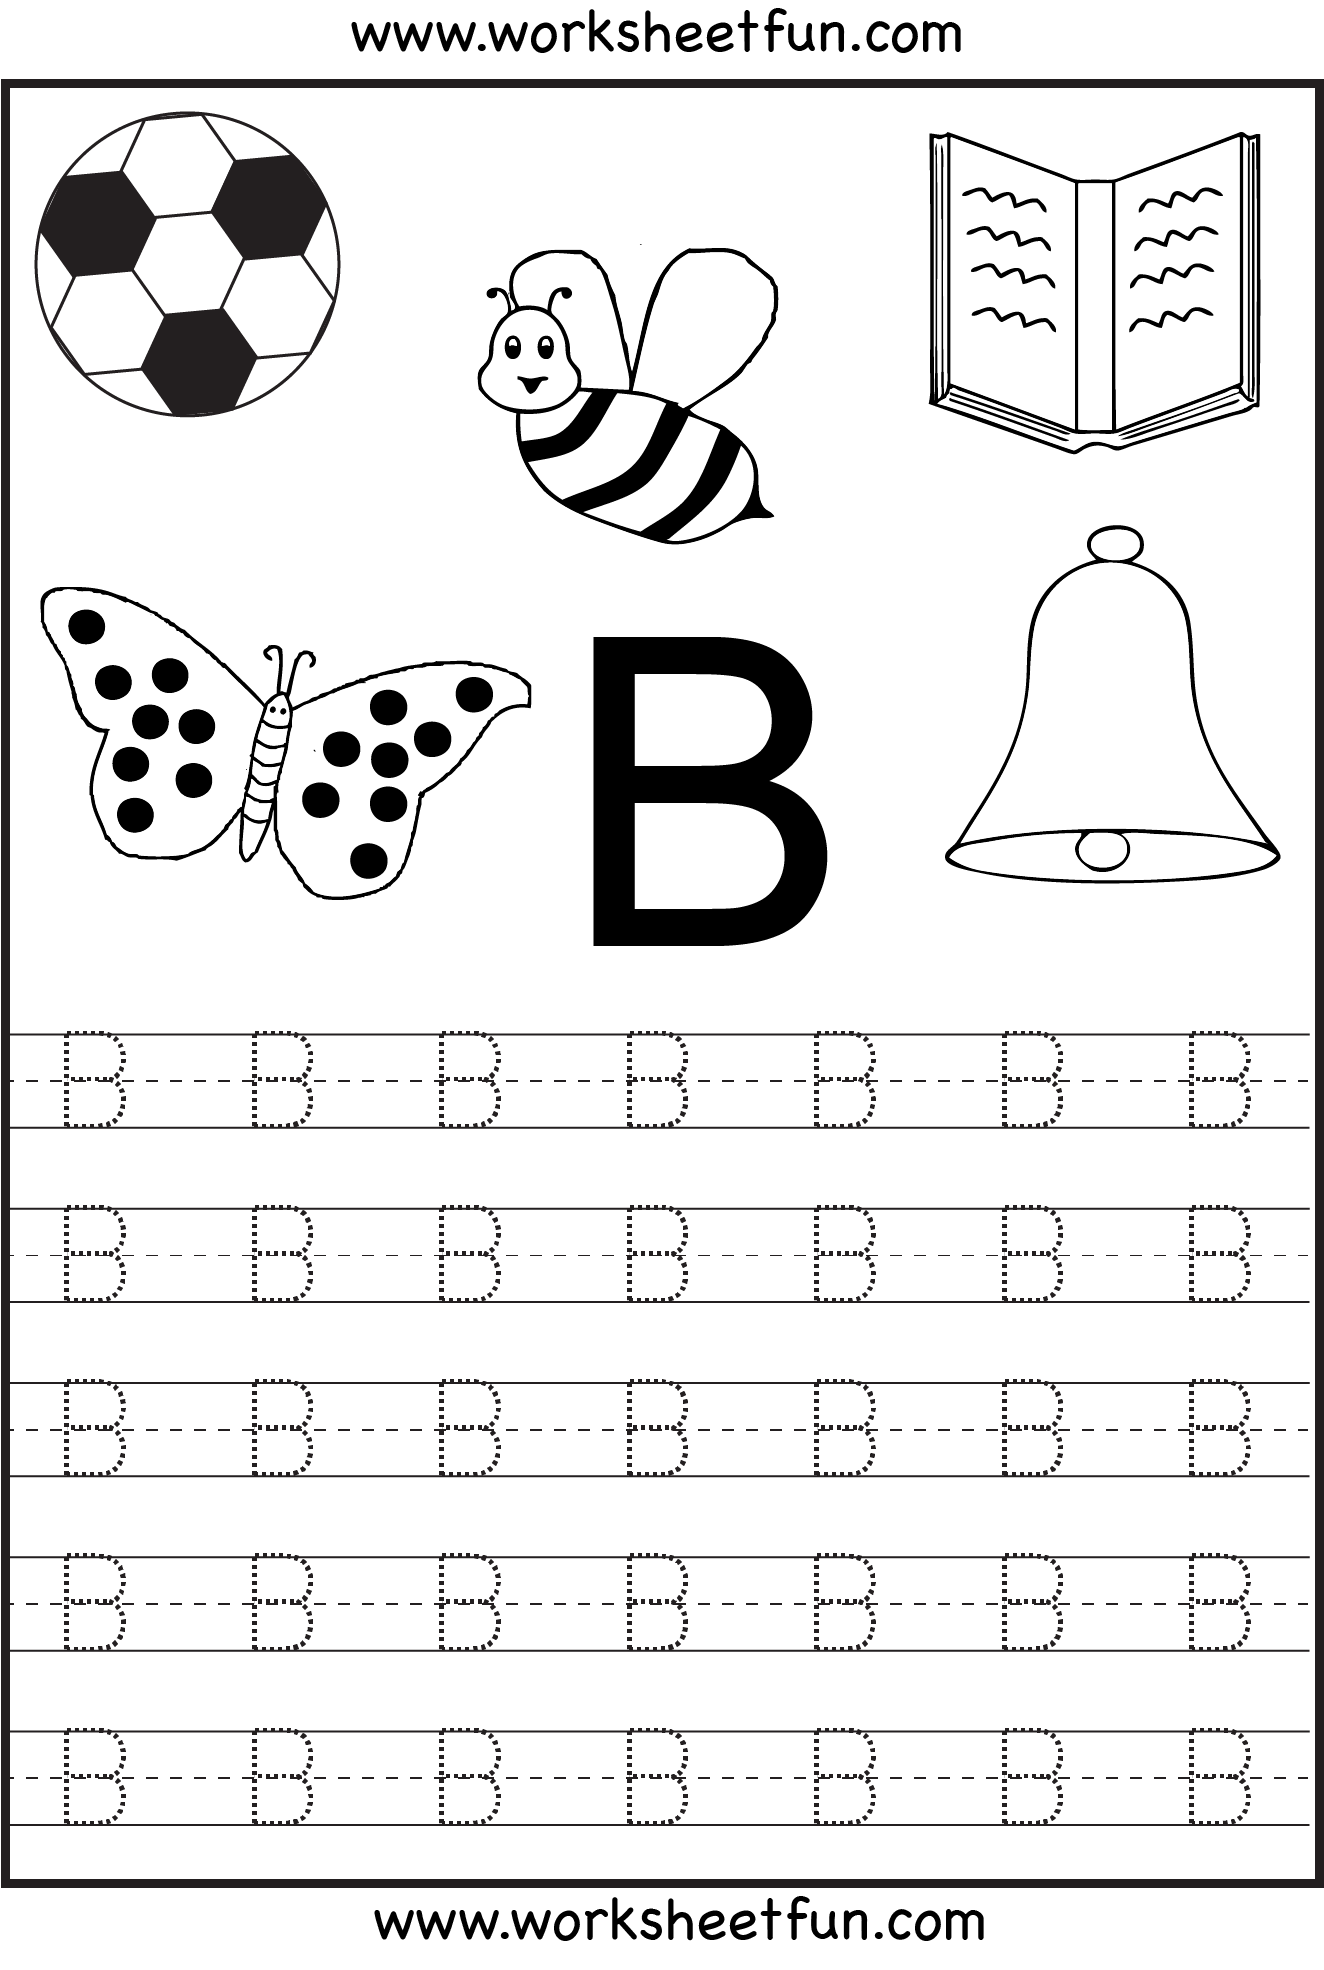 Worksheets Free Printable Preschool Worksheets Tracing Letters free printable letter tracing worksheets for kindergarten 26 worksheets